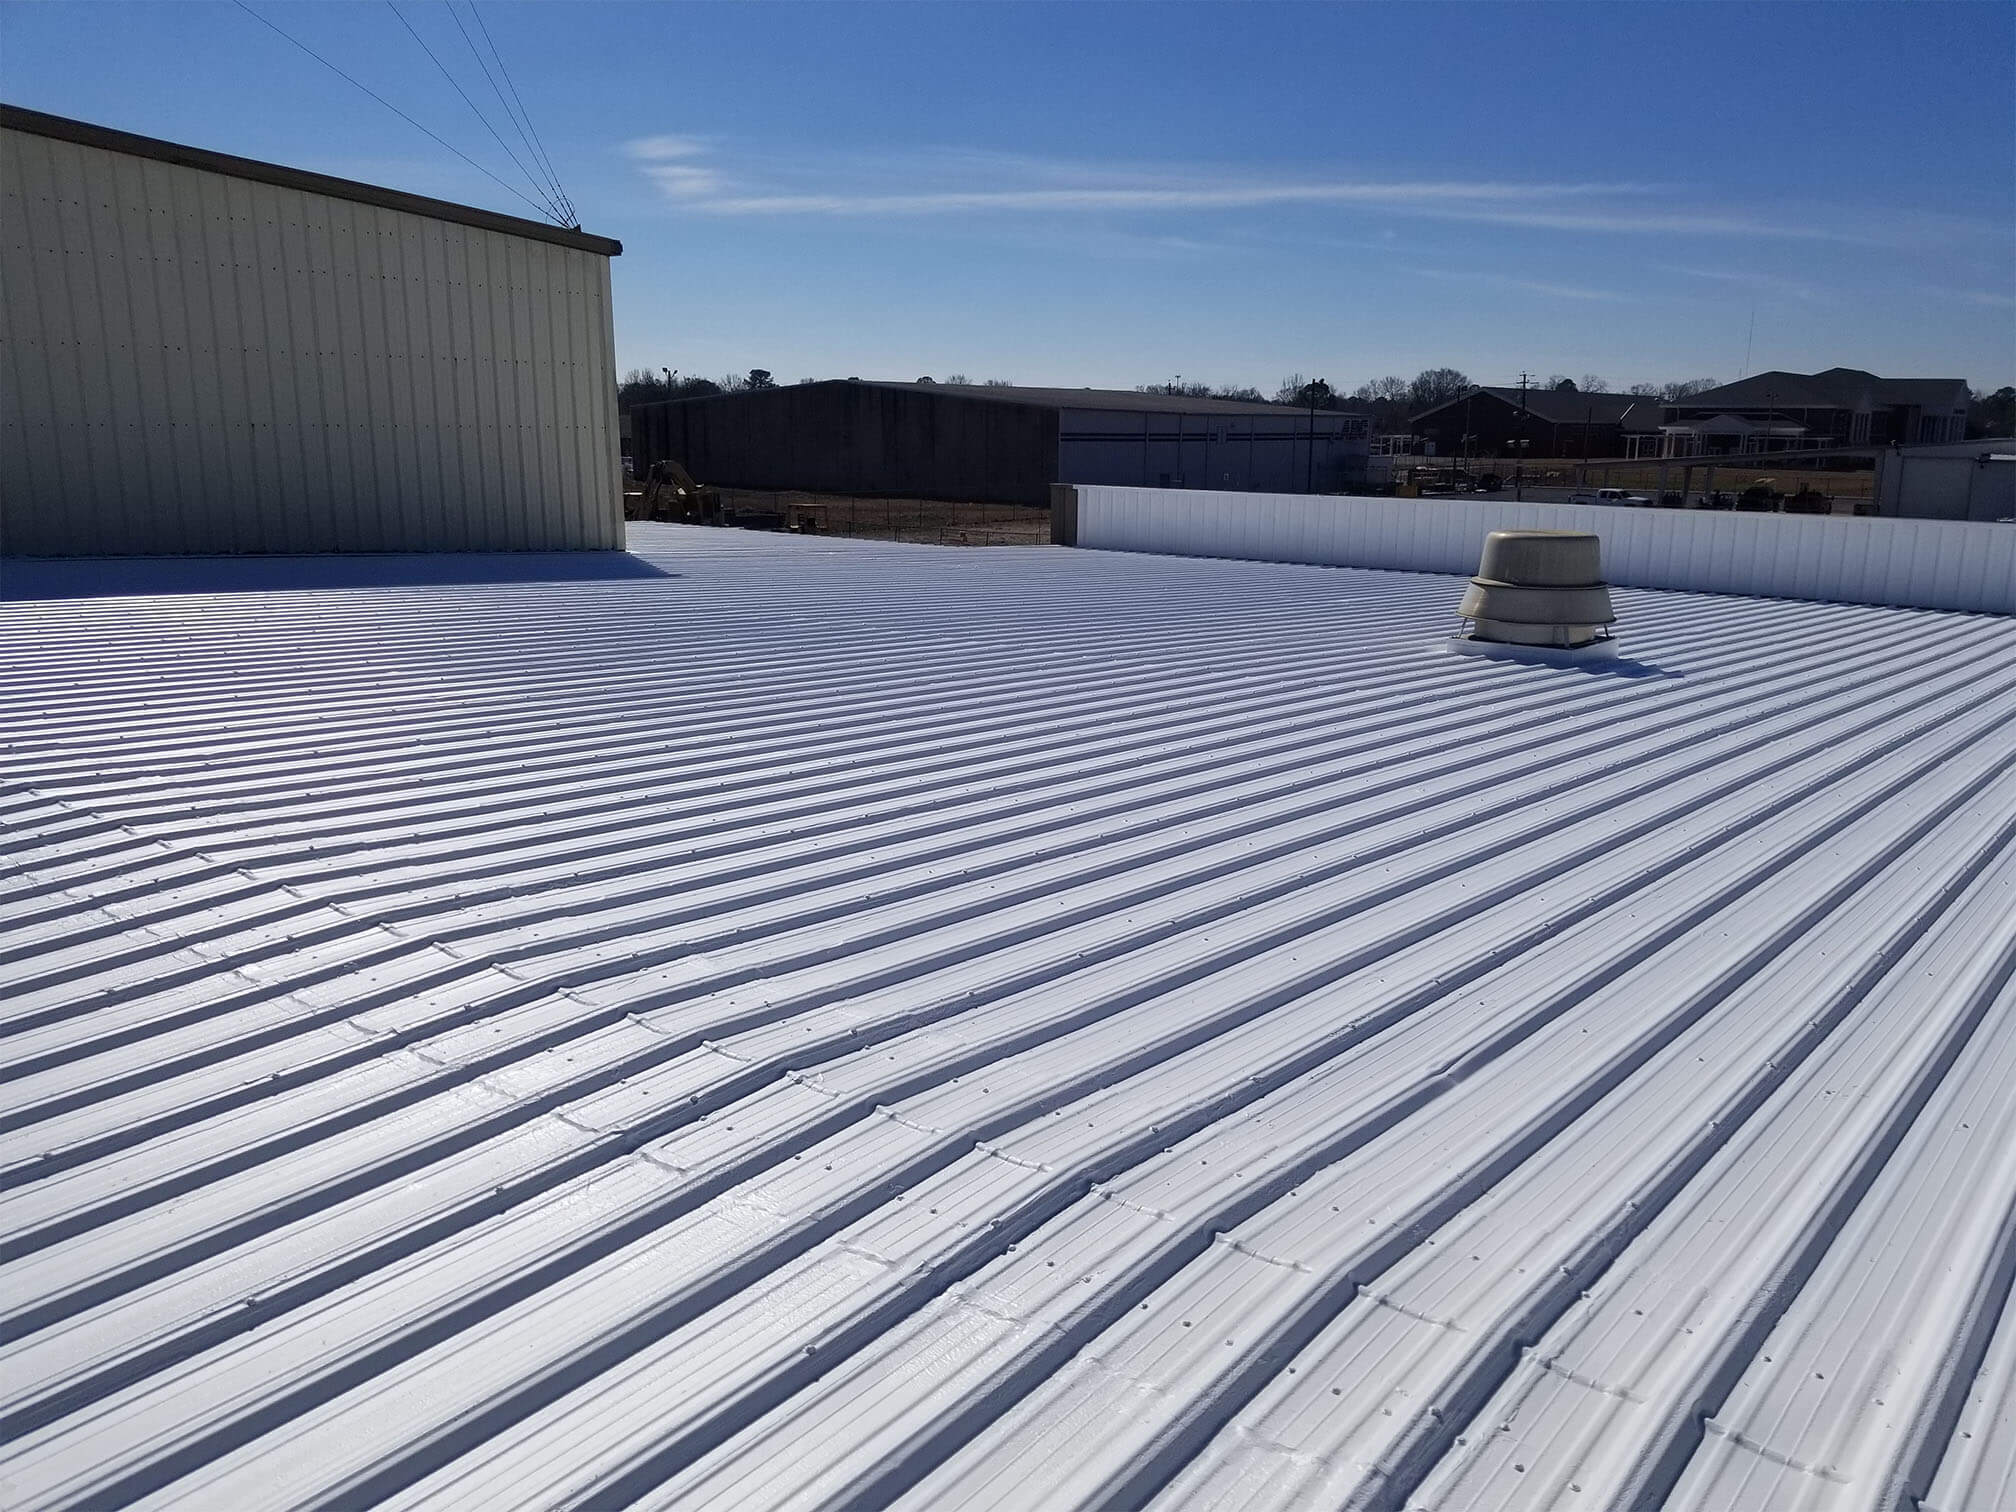 A ridged, metal roof has a white coating on it, reflecting the sun.